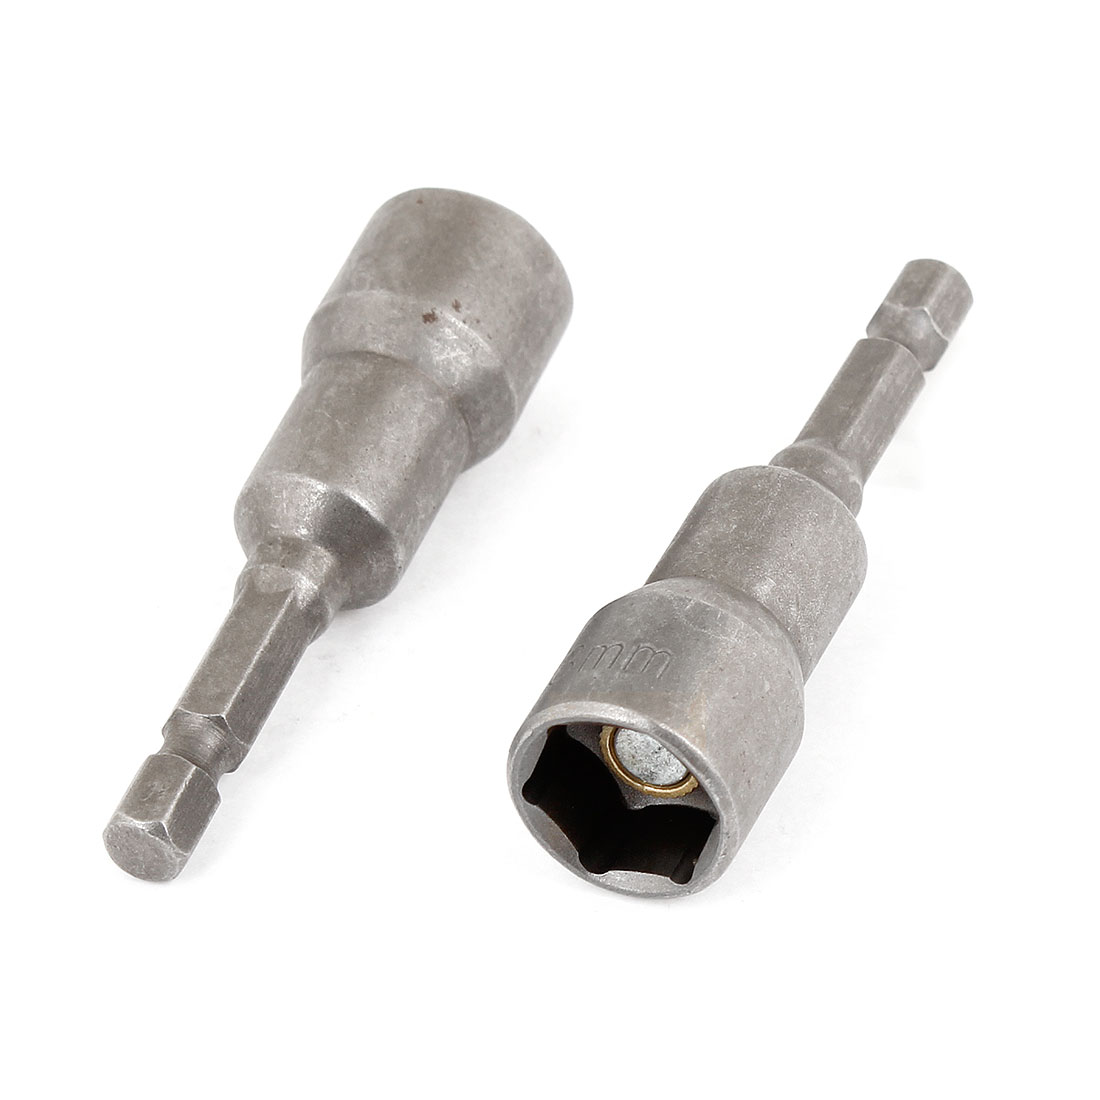 2 x 65mm Long Hex Power 13mm Socket Nut Driver Setters Bits